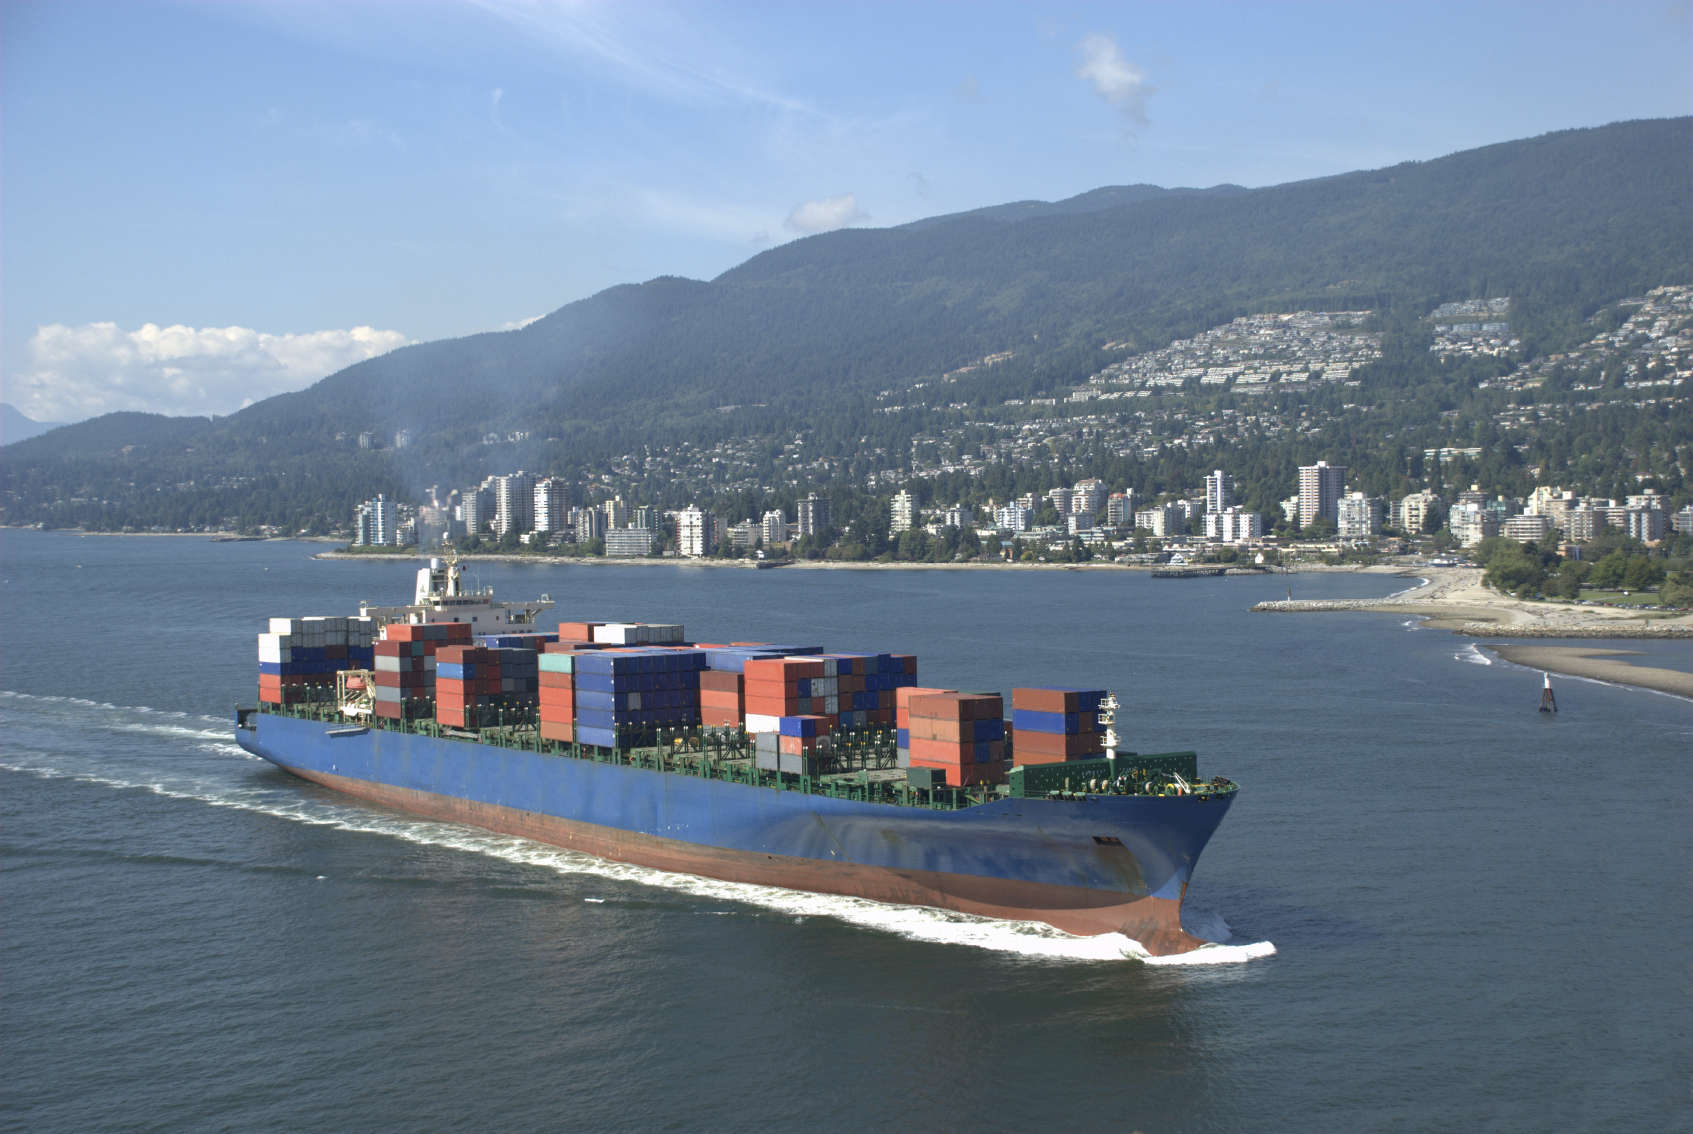 What Does Climate Change Mean for the Future of Trade and Transportation?